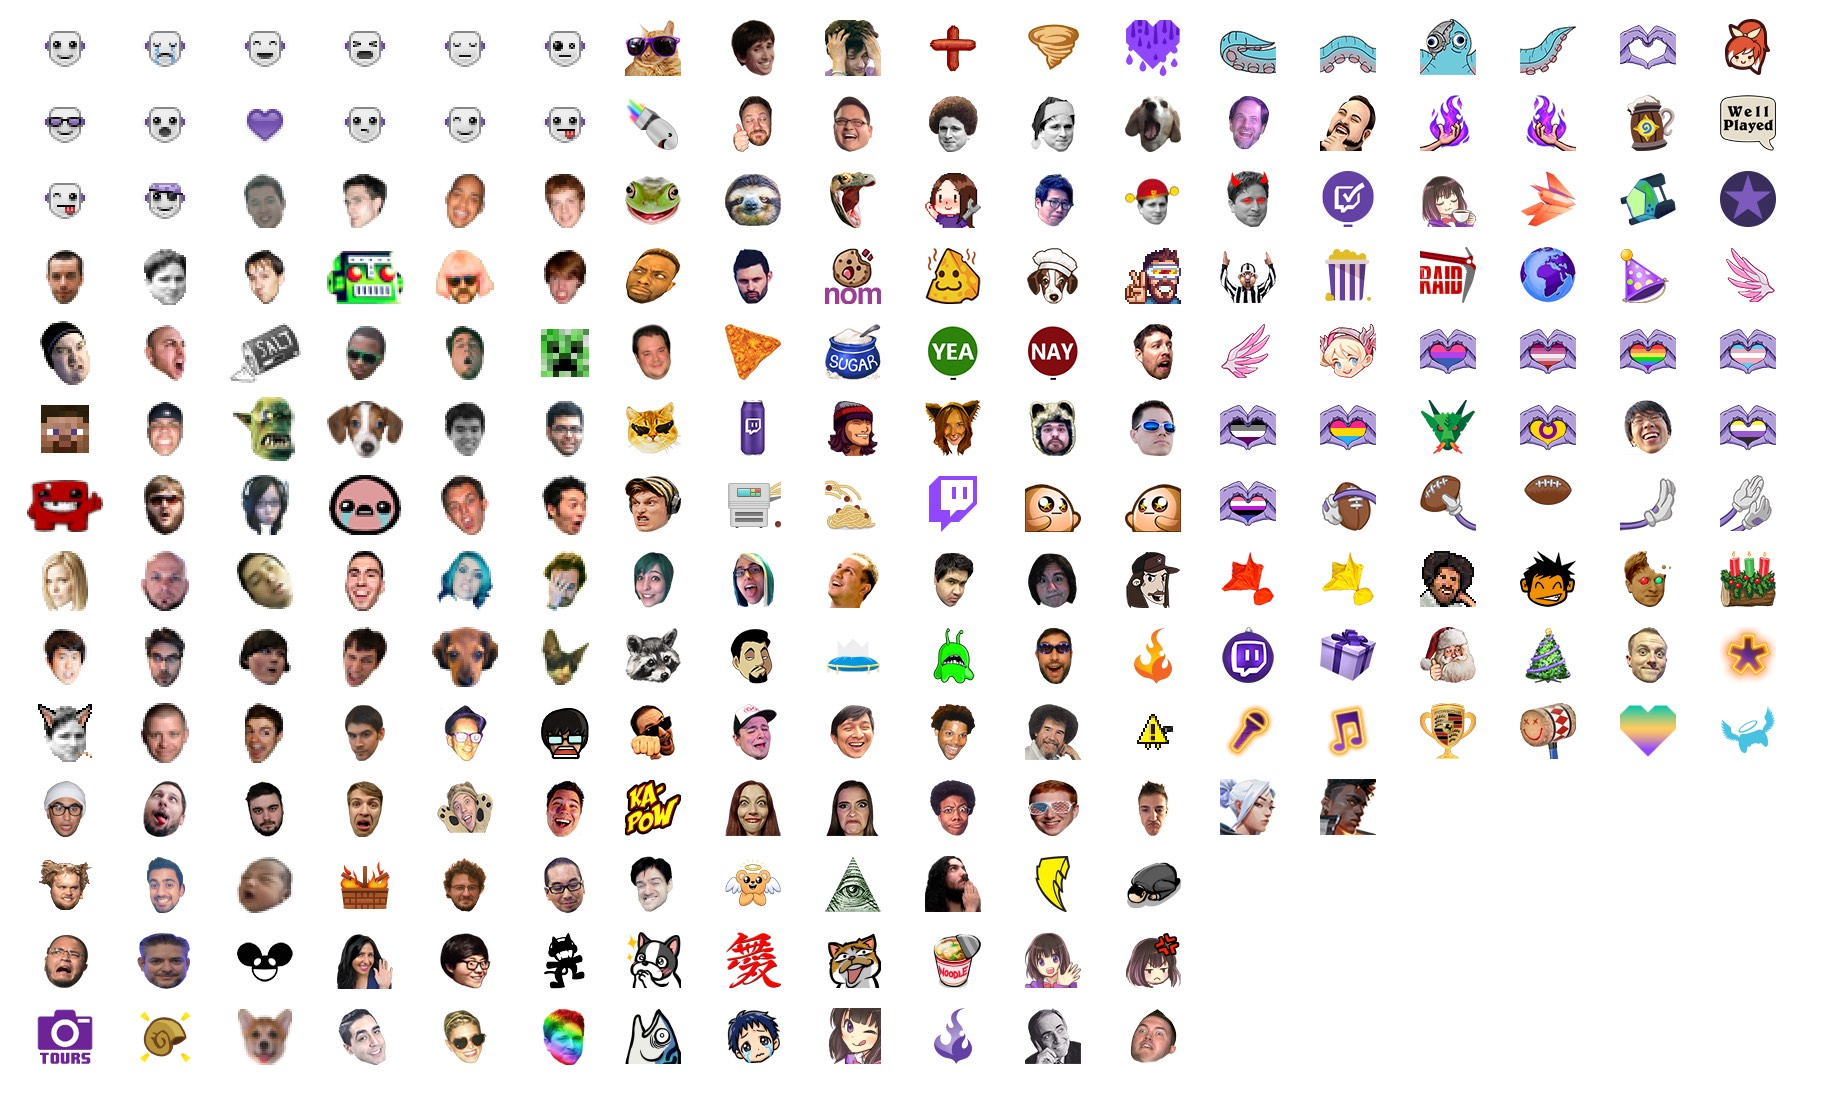 Subscribe on Twitch: emotes